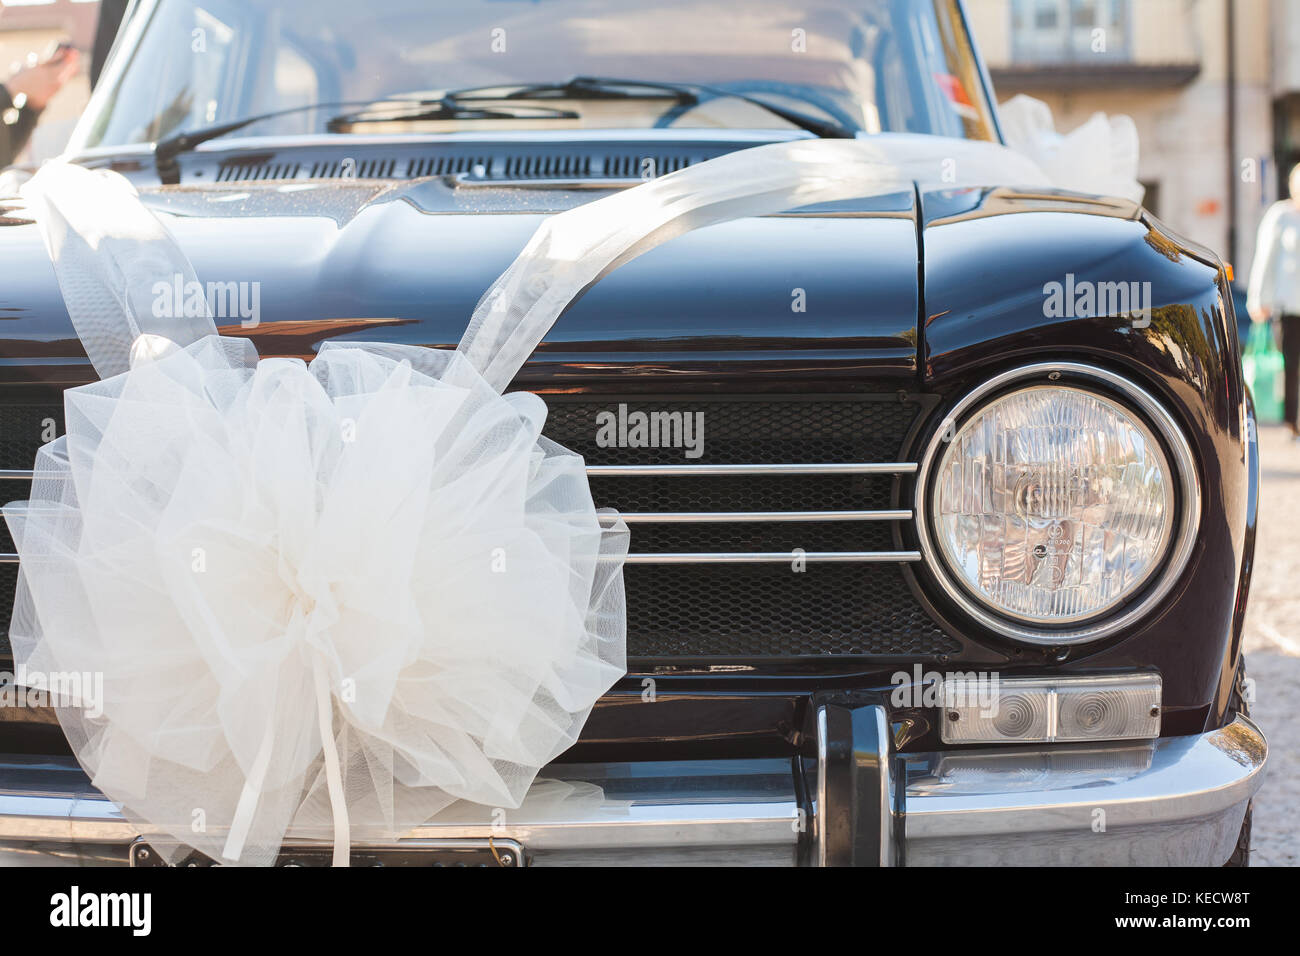 Vintage Luxury Car Ready For Wedding Day With Clean Body And A